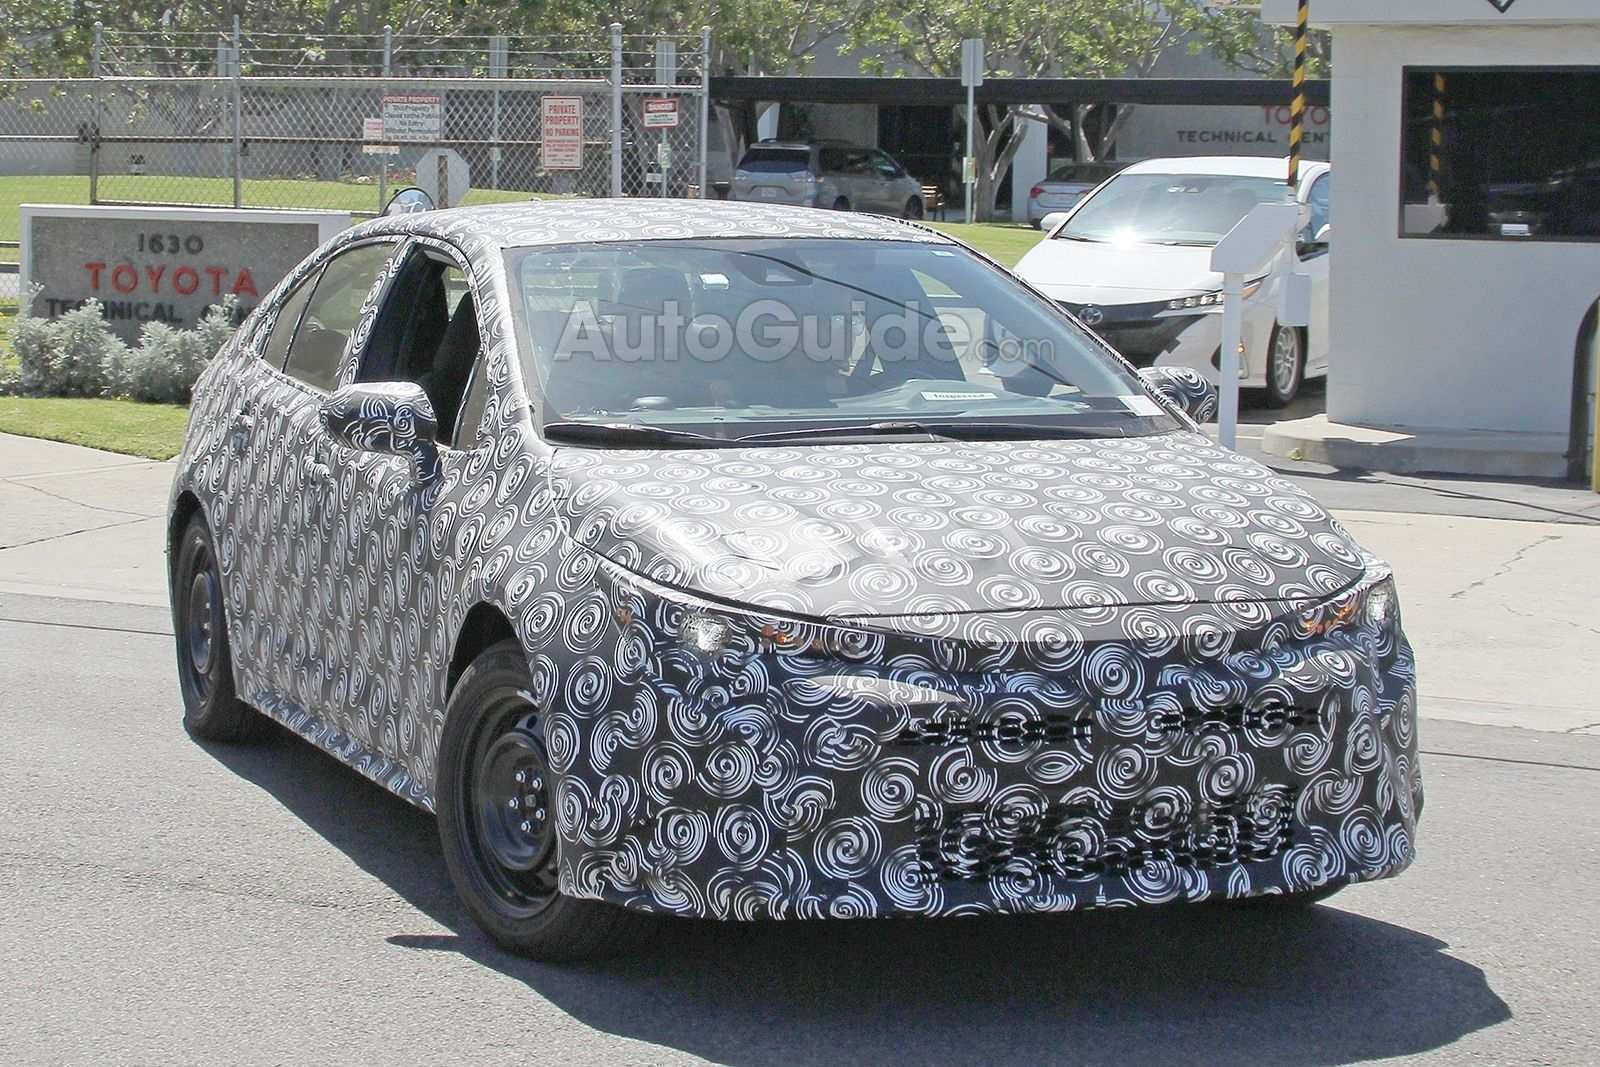 65 New 2020 New Toyota Avensis Spy Shots Pictures